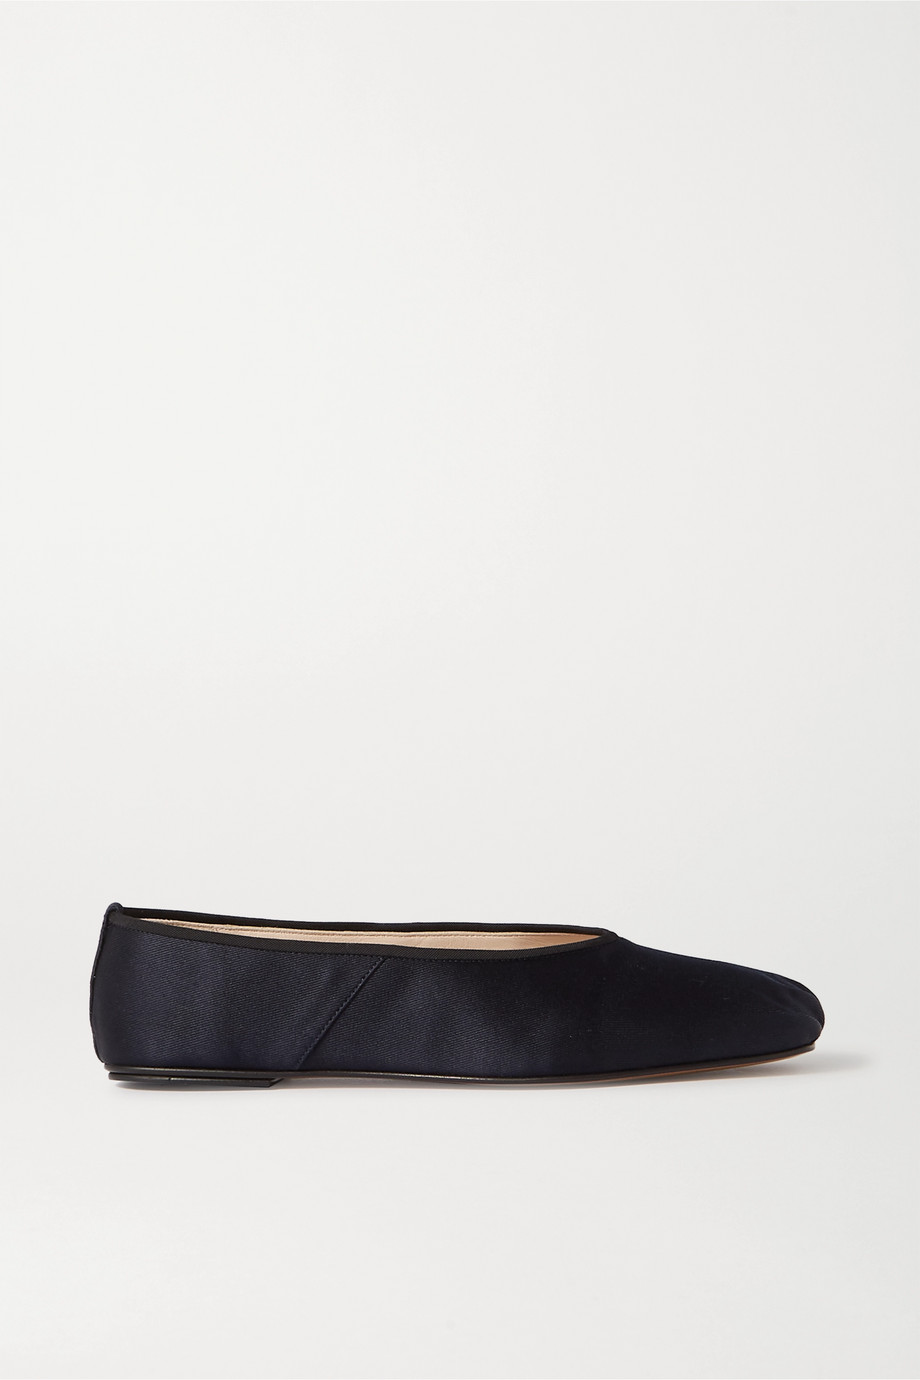 The Row Satin ballet flats